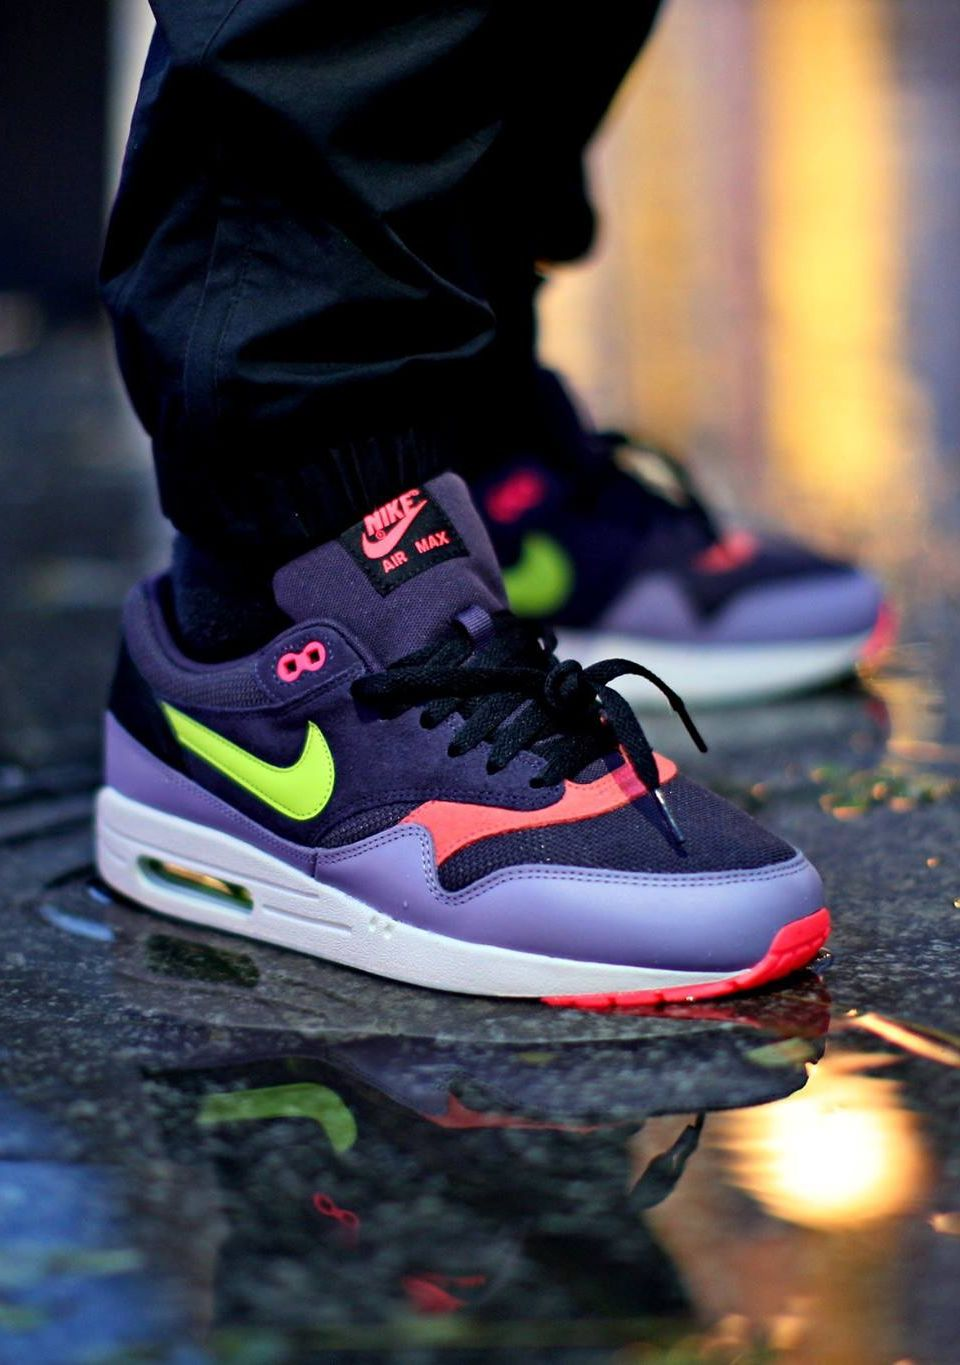 newest d4c99 2ea90 Nike Air Max 1  Master  - 2017 (by ma2tjaw)   Sneakers Mens   Phillip  Norman in 2019   Nike air max, Air max, Nike